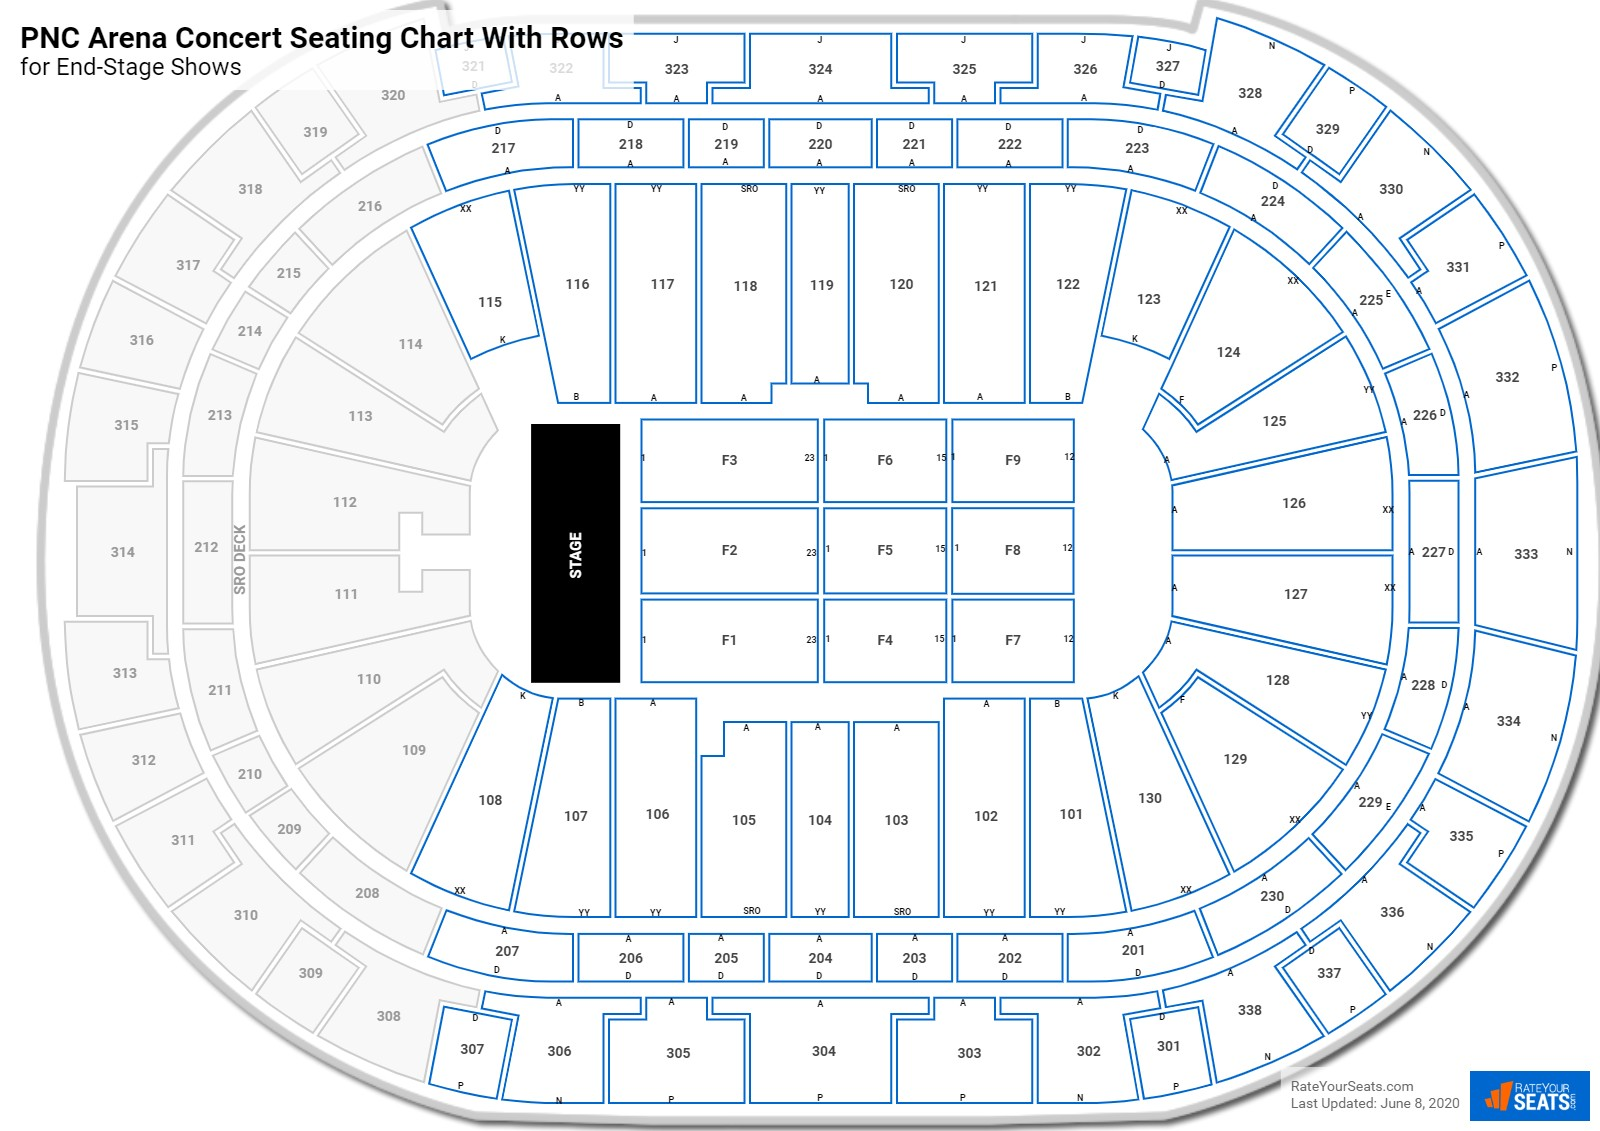 PNC Arena seating chart with rows concert